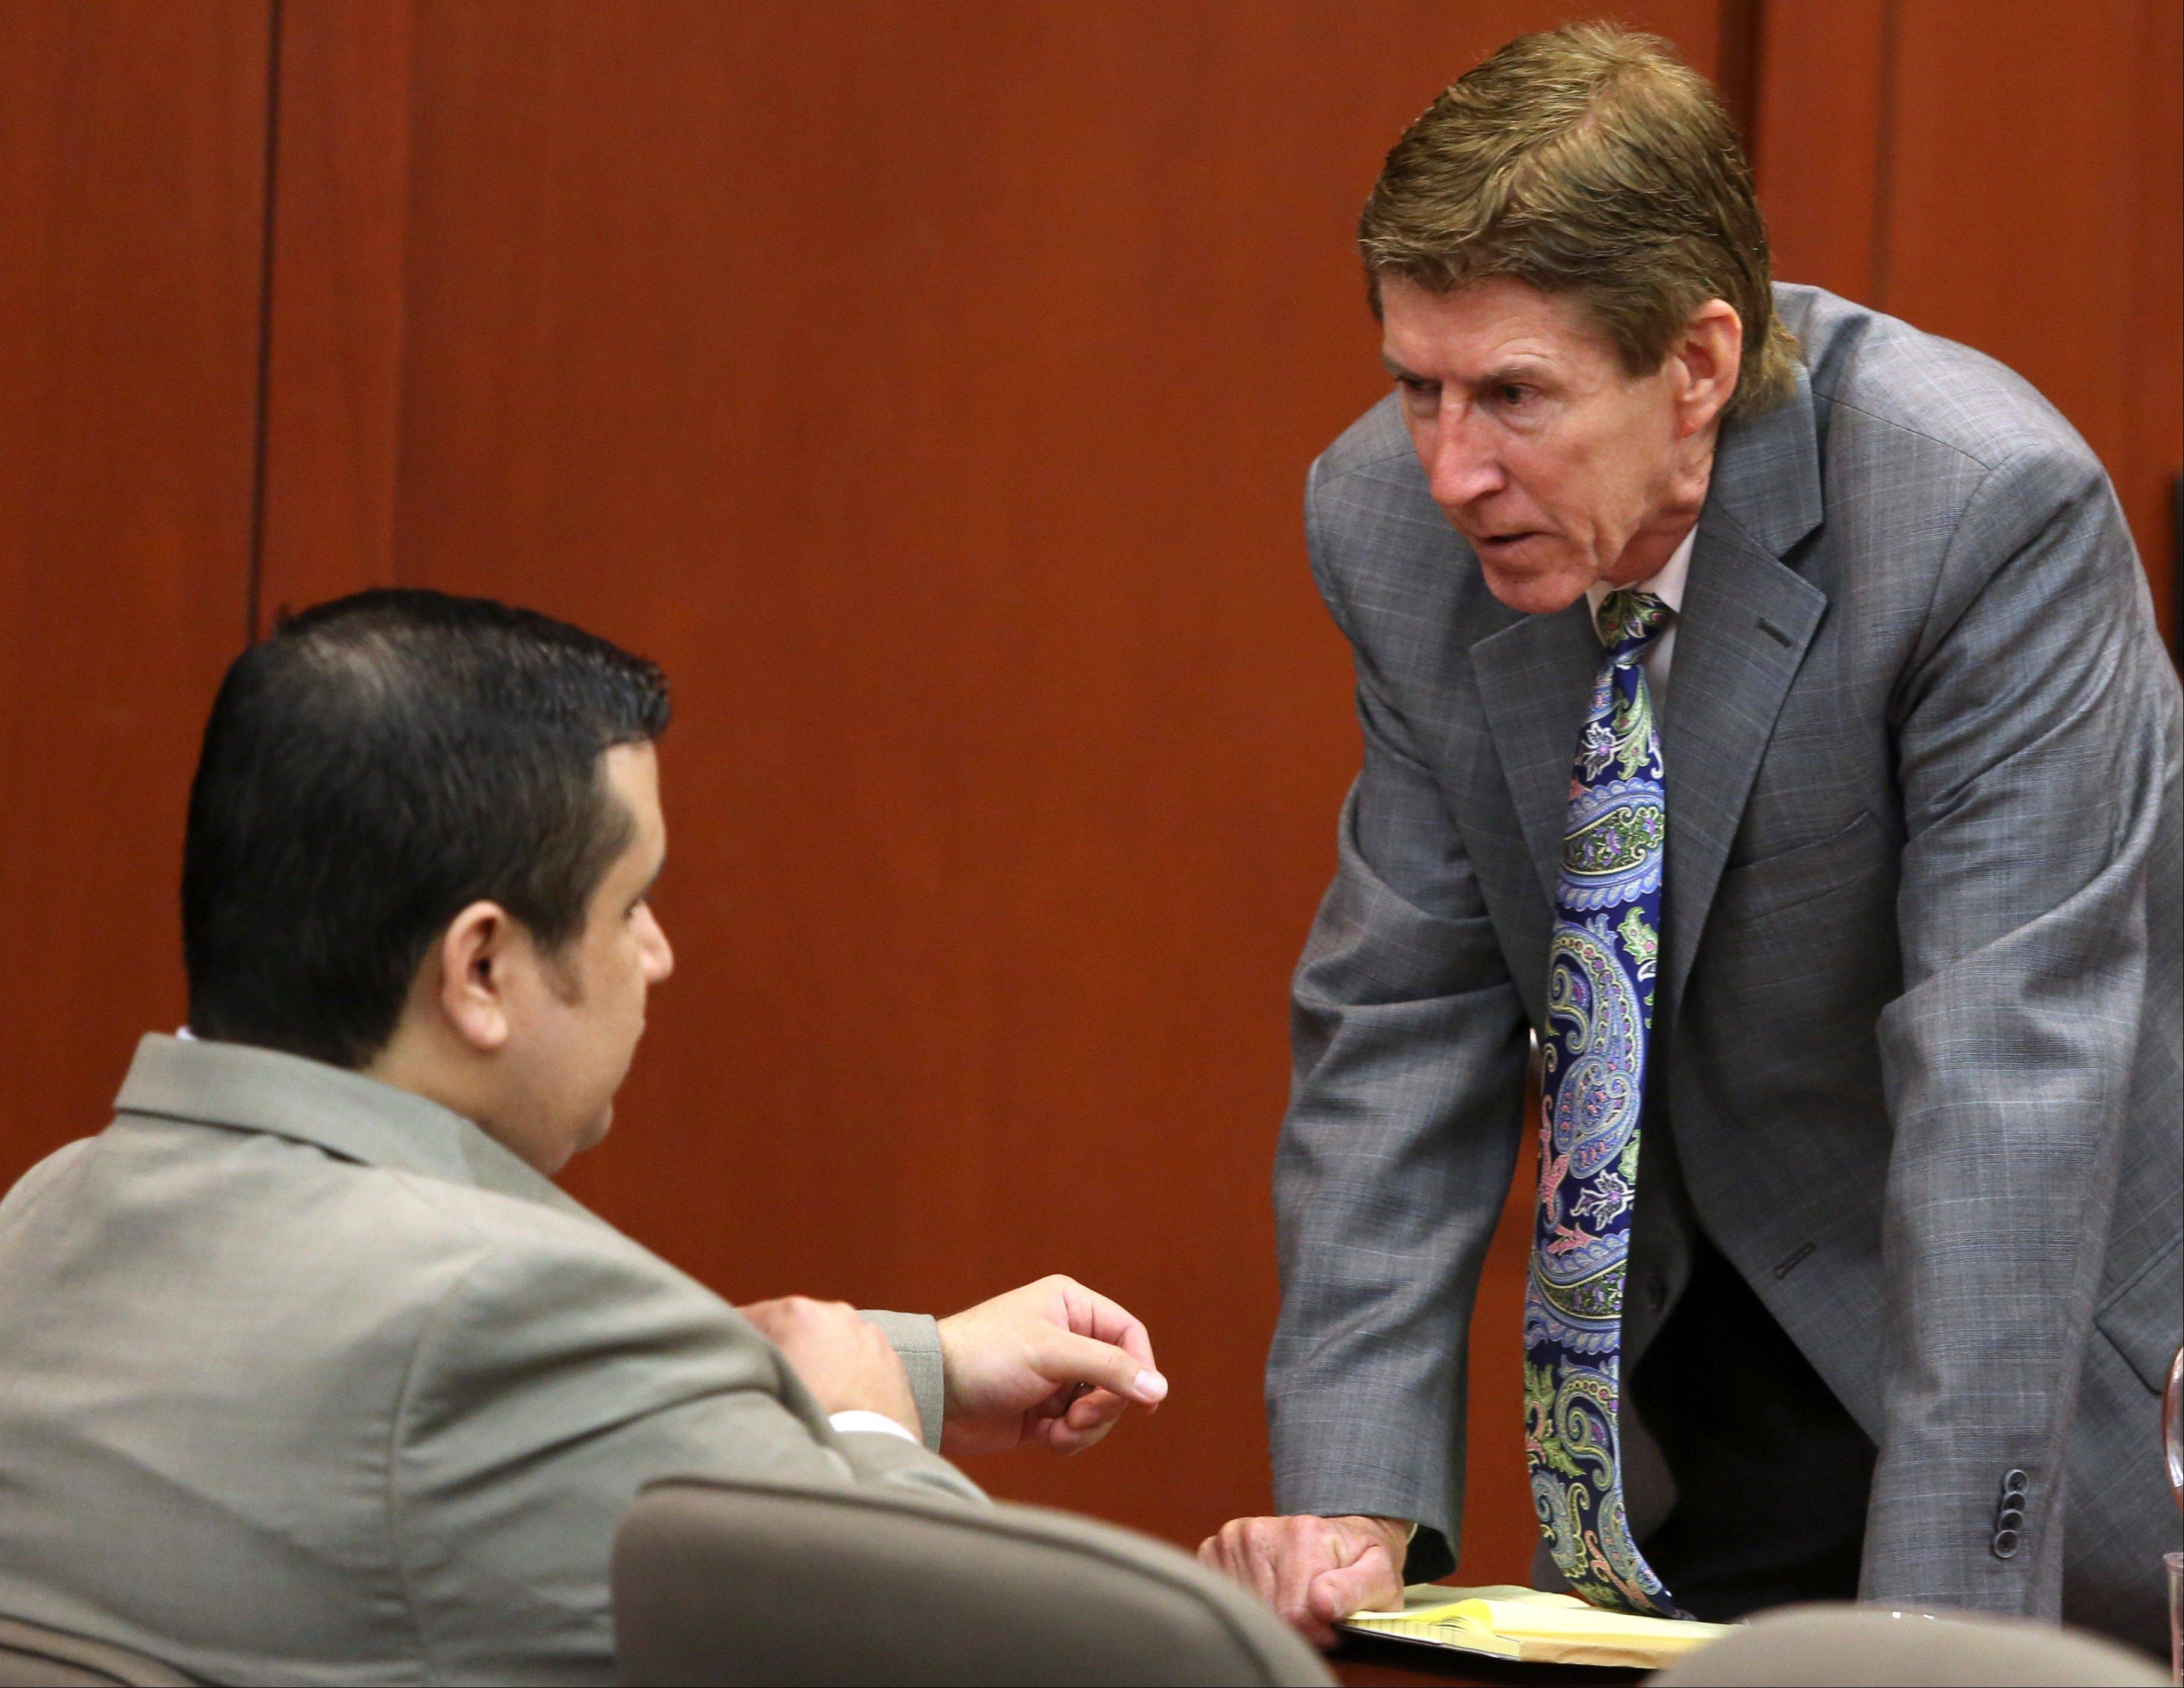 Defense attorney Mark O'Mara, right, speaks with client George Zimmerman during his trial in Seminole County circuit court in Sanford, Fla. Tuesday. Zimmerman has been charged with second-degree murder for the 2012 shooting death of Trayvon Martin.